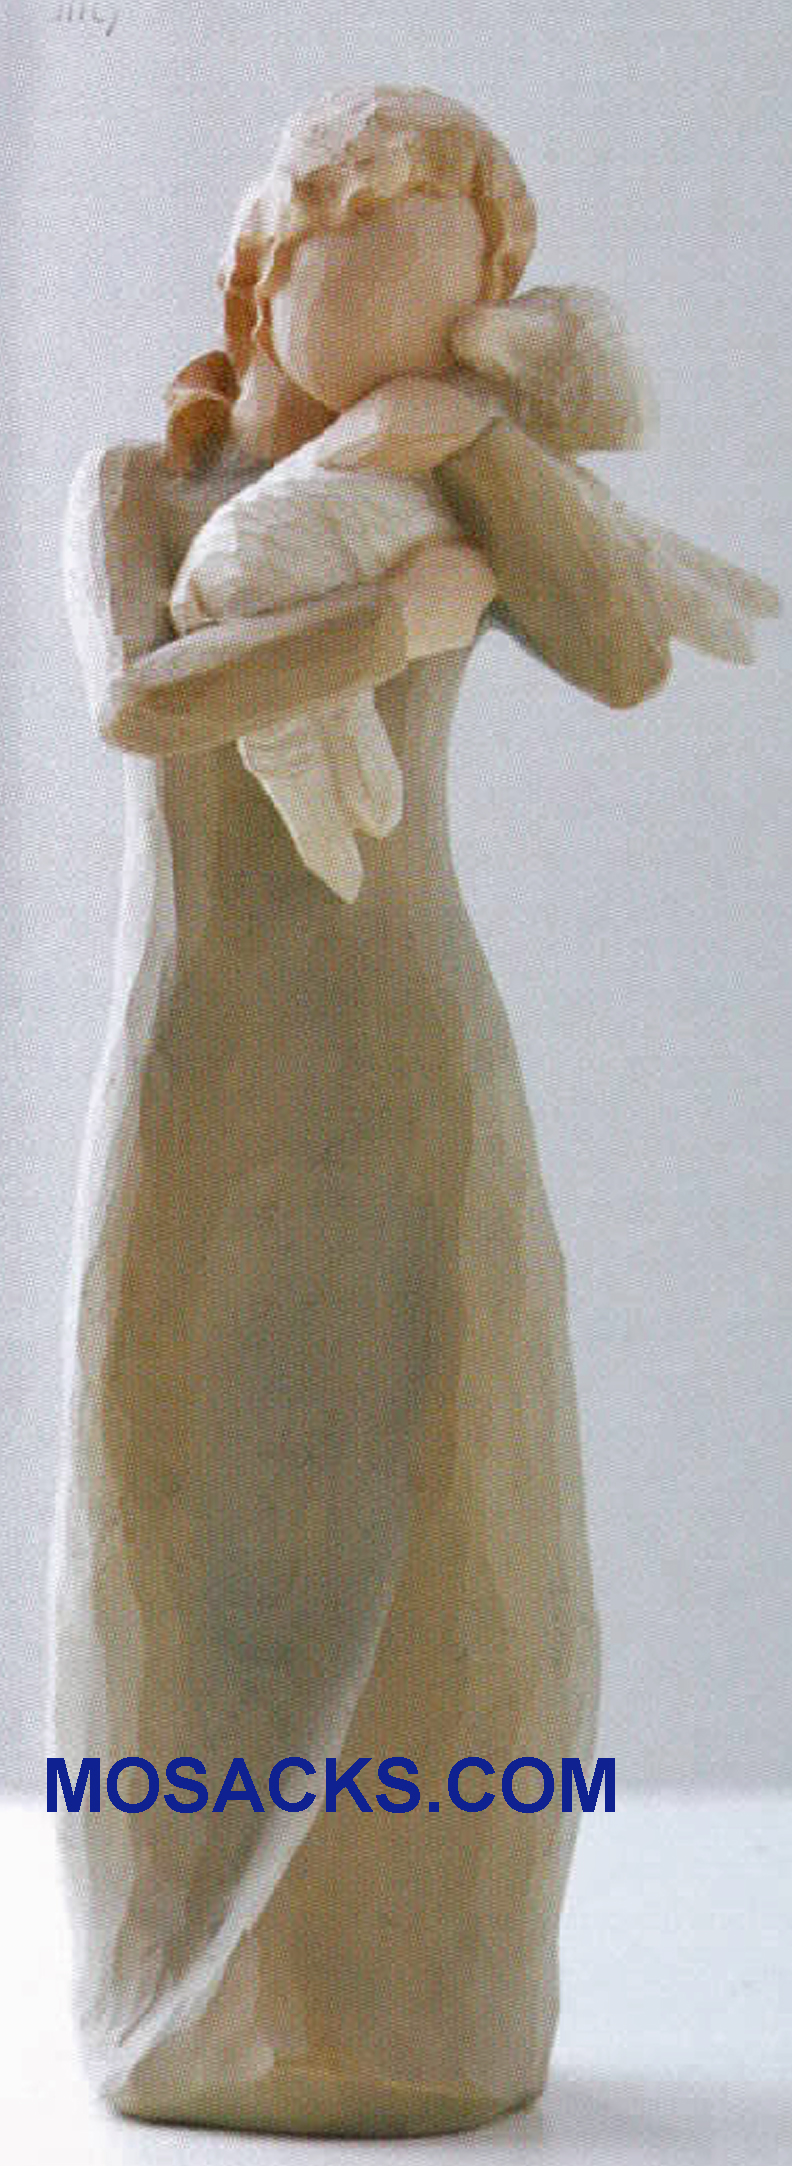 "Willow Tree® Figurine Peace on Earth 8.5"" H 26104"